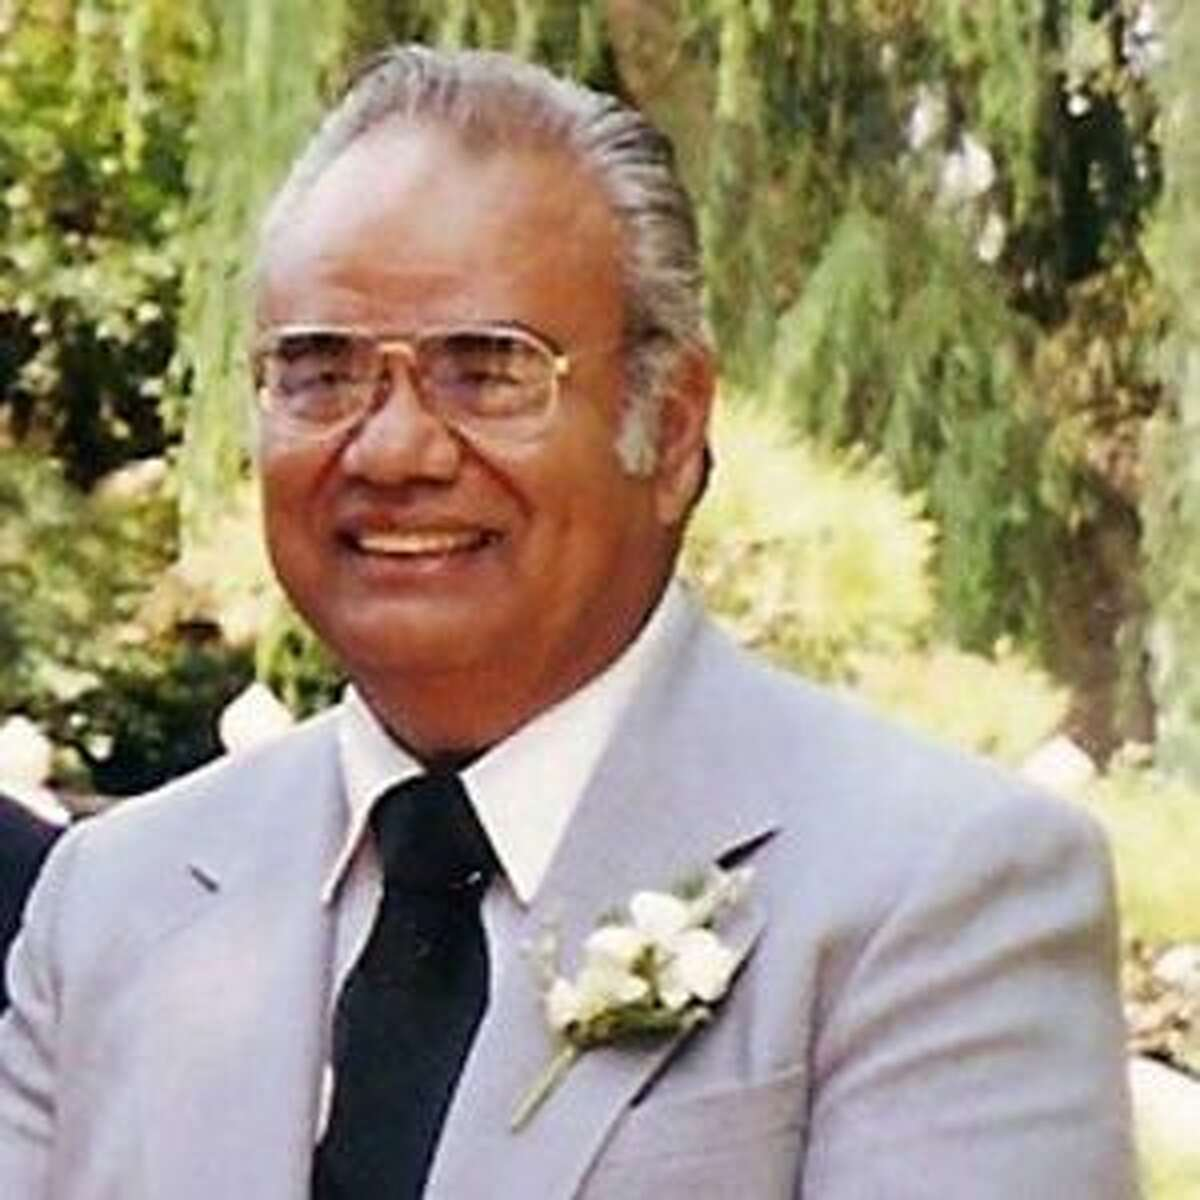 Ernest Russell Lopez received his masters of divinity degree in 1970.